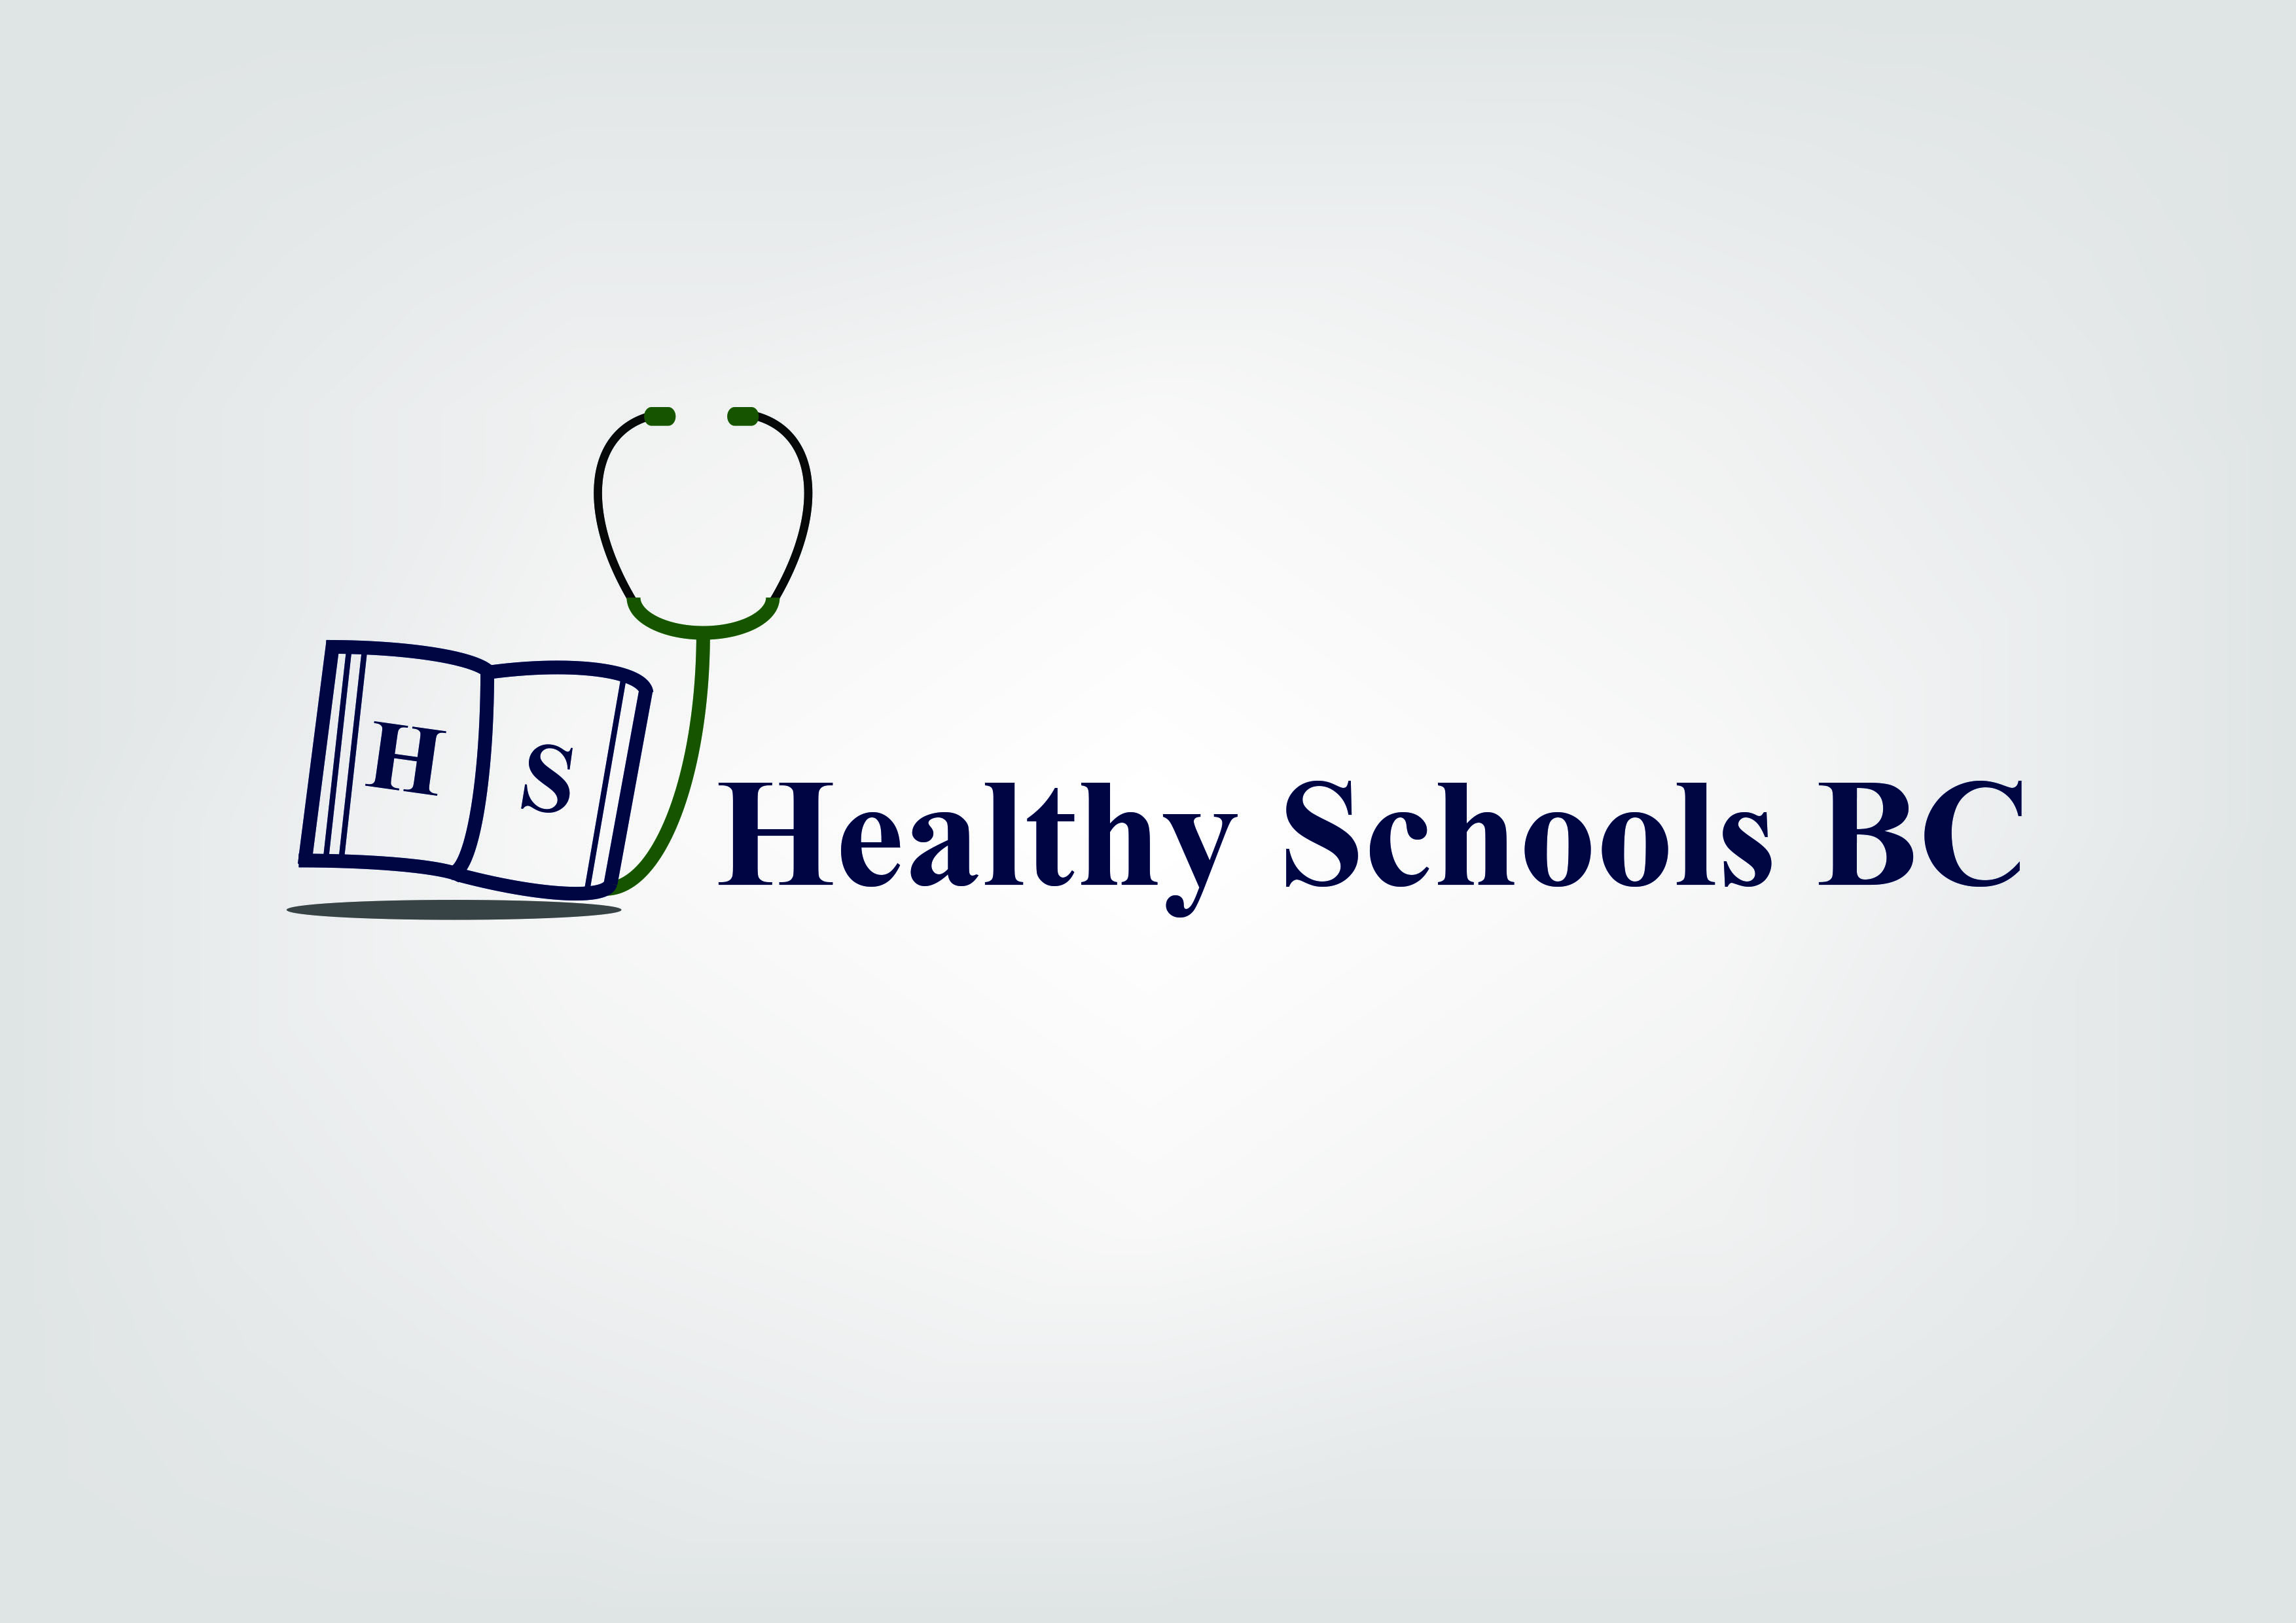 Logo Design by Sridhar Jarupala - Entry No. 12 in the Logo Design Contest SImple, Creative and Clean Logo Design for Healthy Schools British Columbia, Canada.